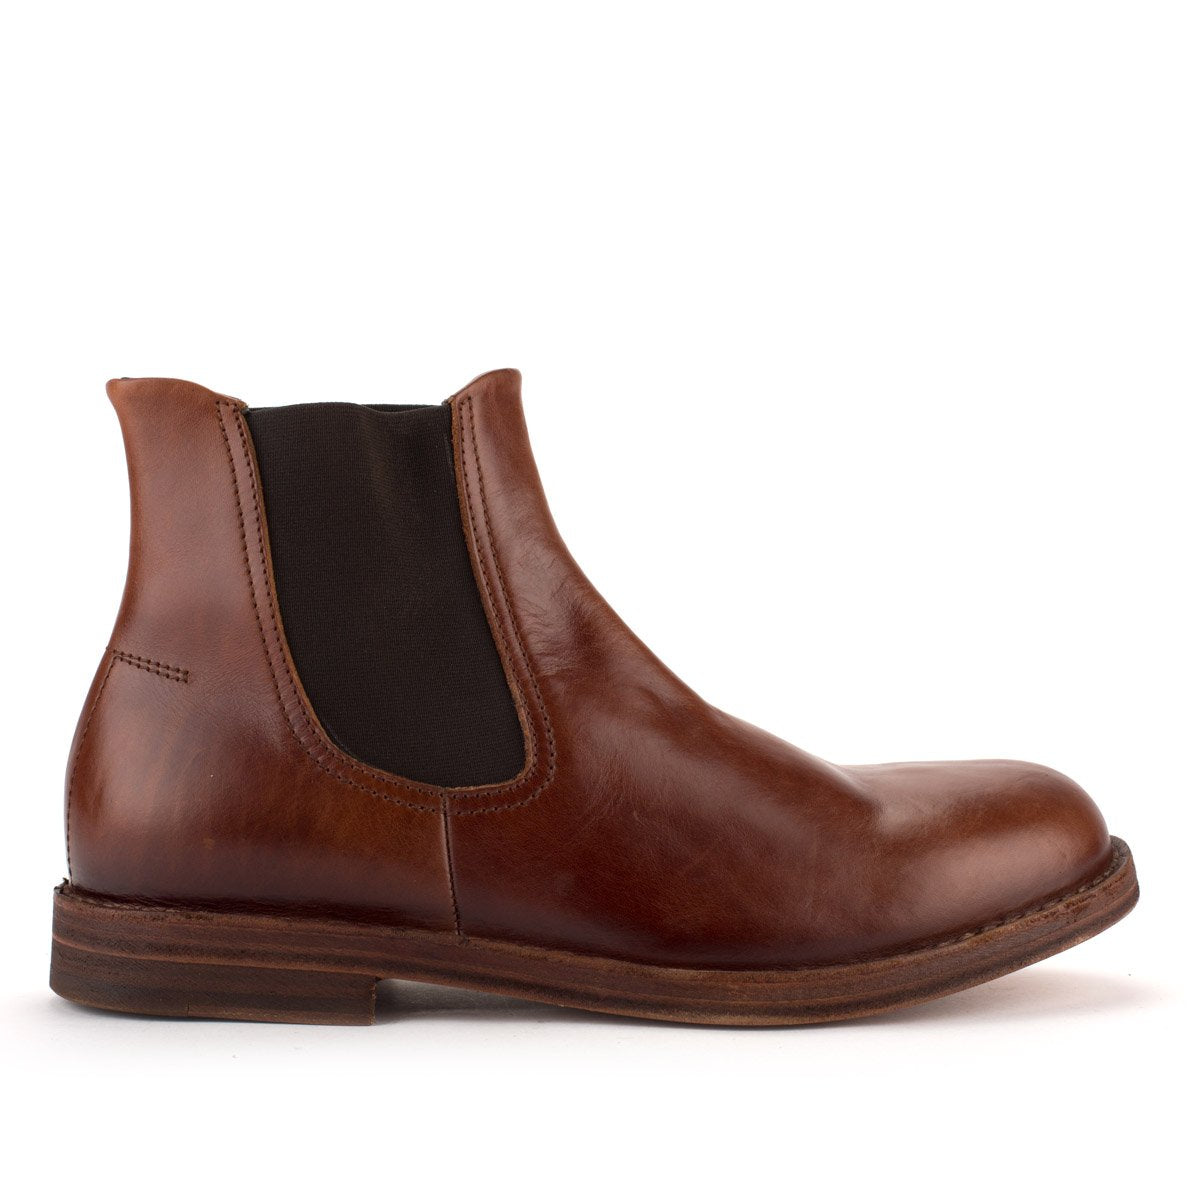 MR PARKER CHELSEA BOOTS – Tobacco